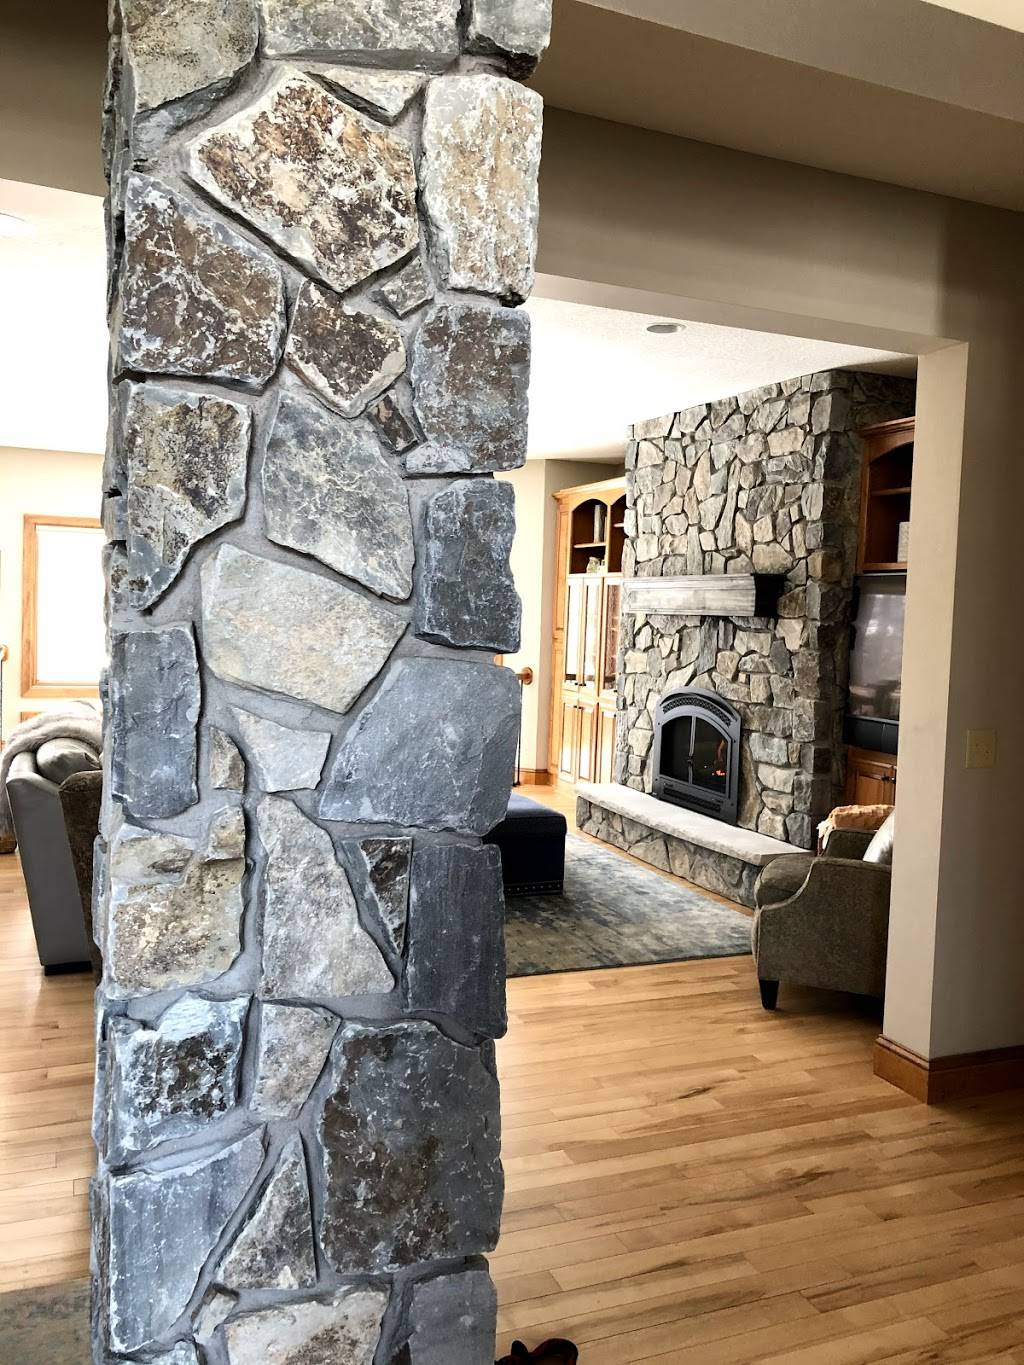 Custom Fireplace & Chimney Care - home goods store    Photo 8 of 8   Address: 9696 University Ave NW, Coon Rapids, MN 55448, USA   Phone: (763) 267-1499